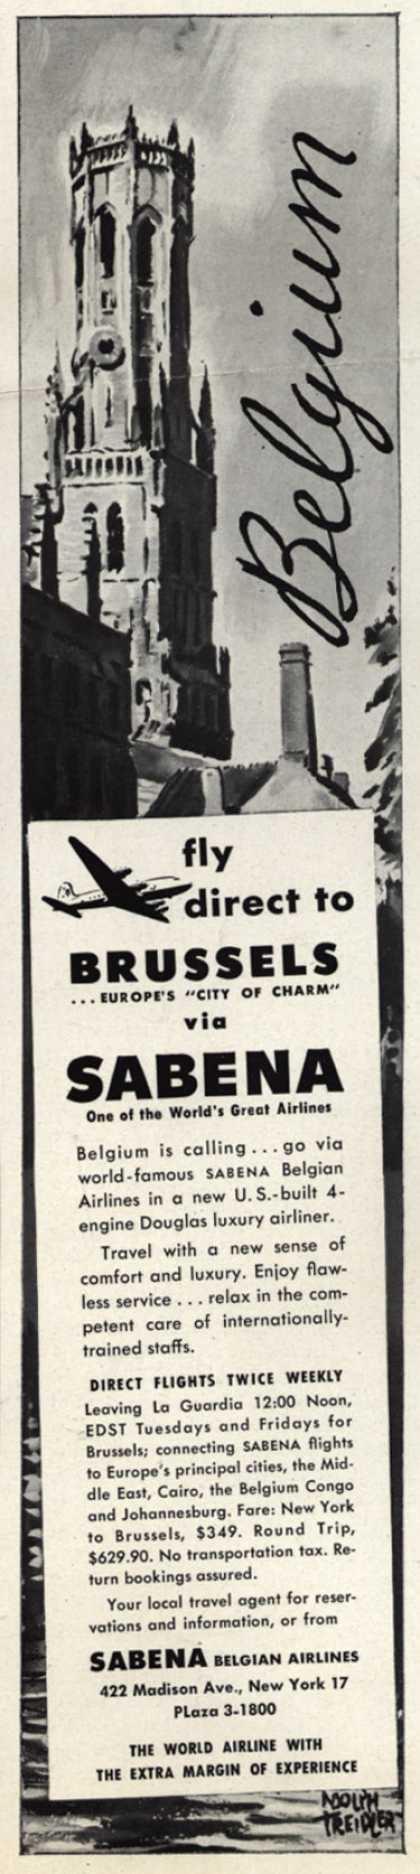 Sabena Belgian Airline's Belgium – fly direct to Brussels via Sabena (1947)